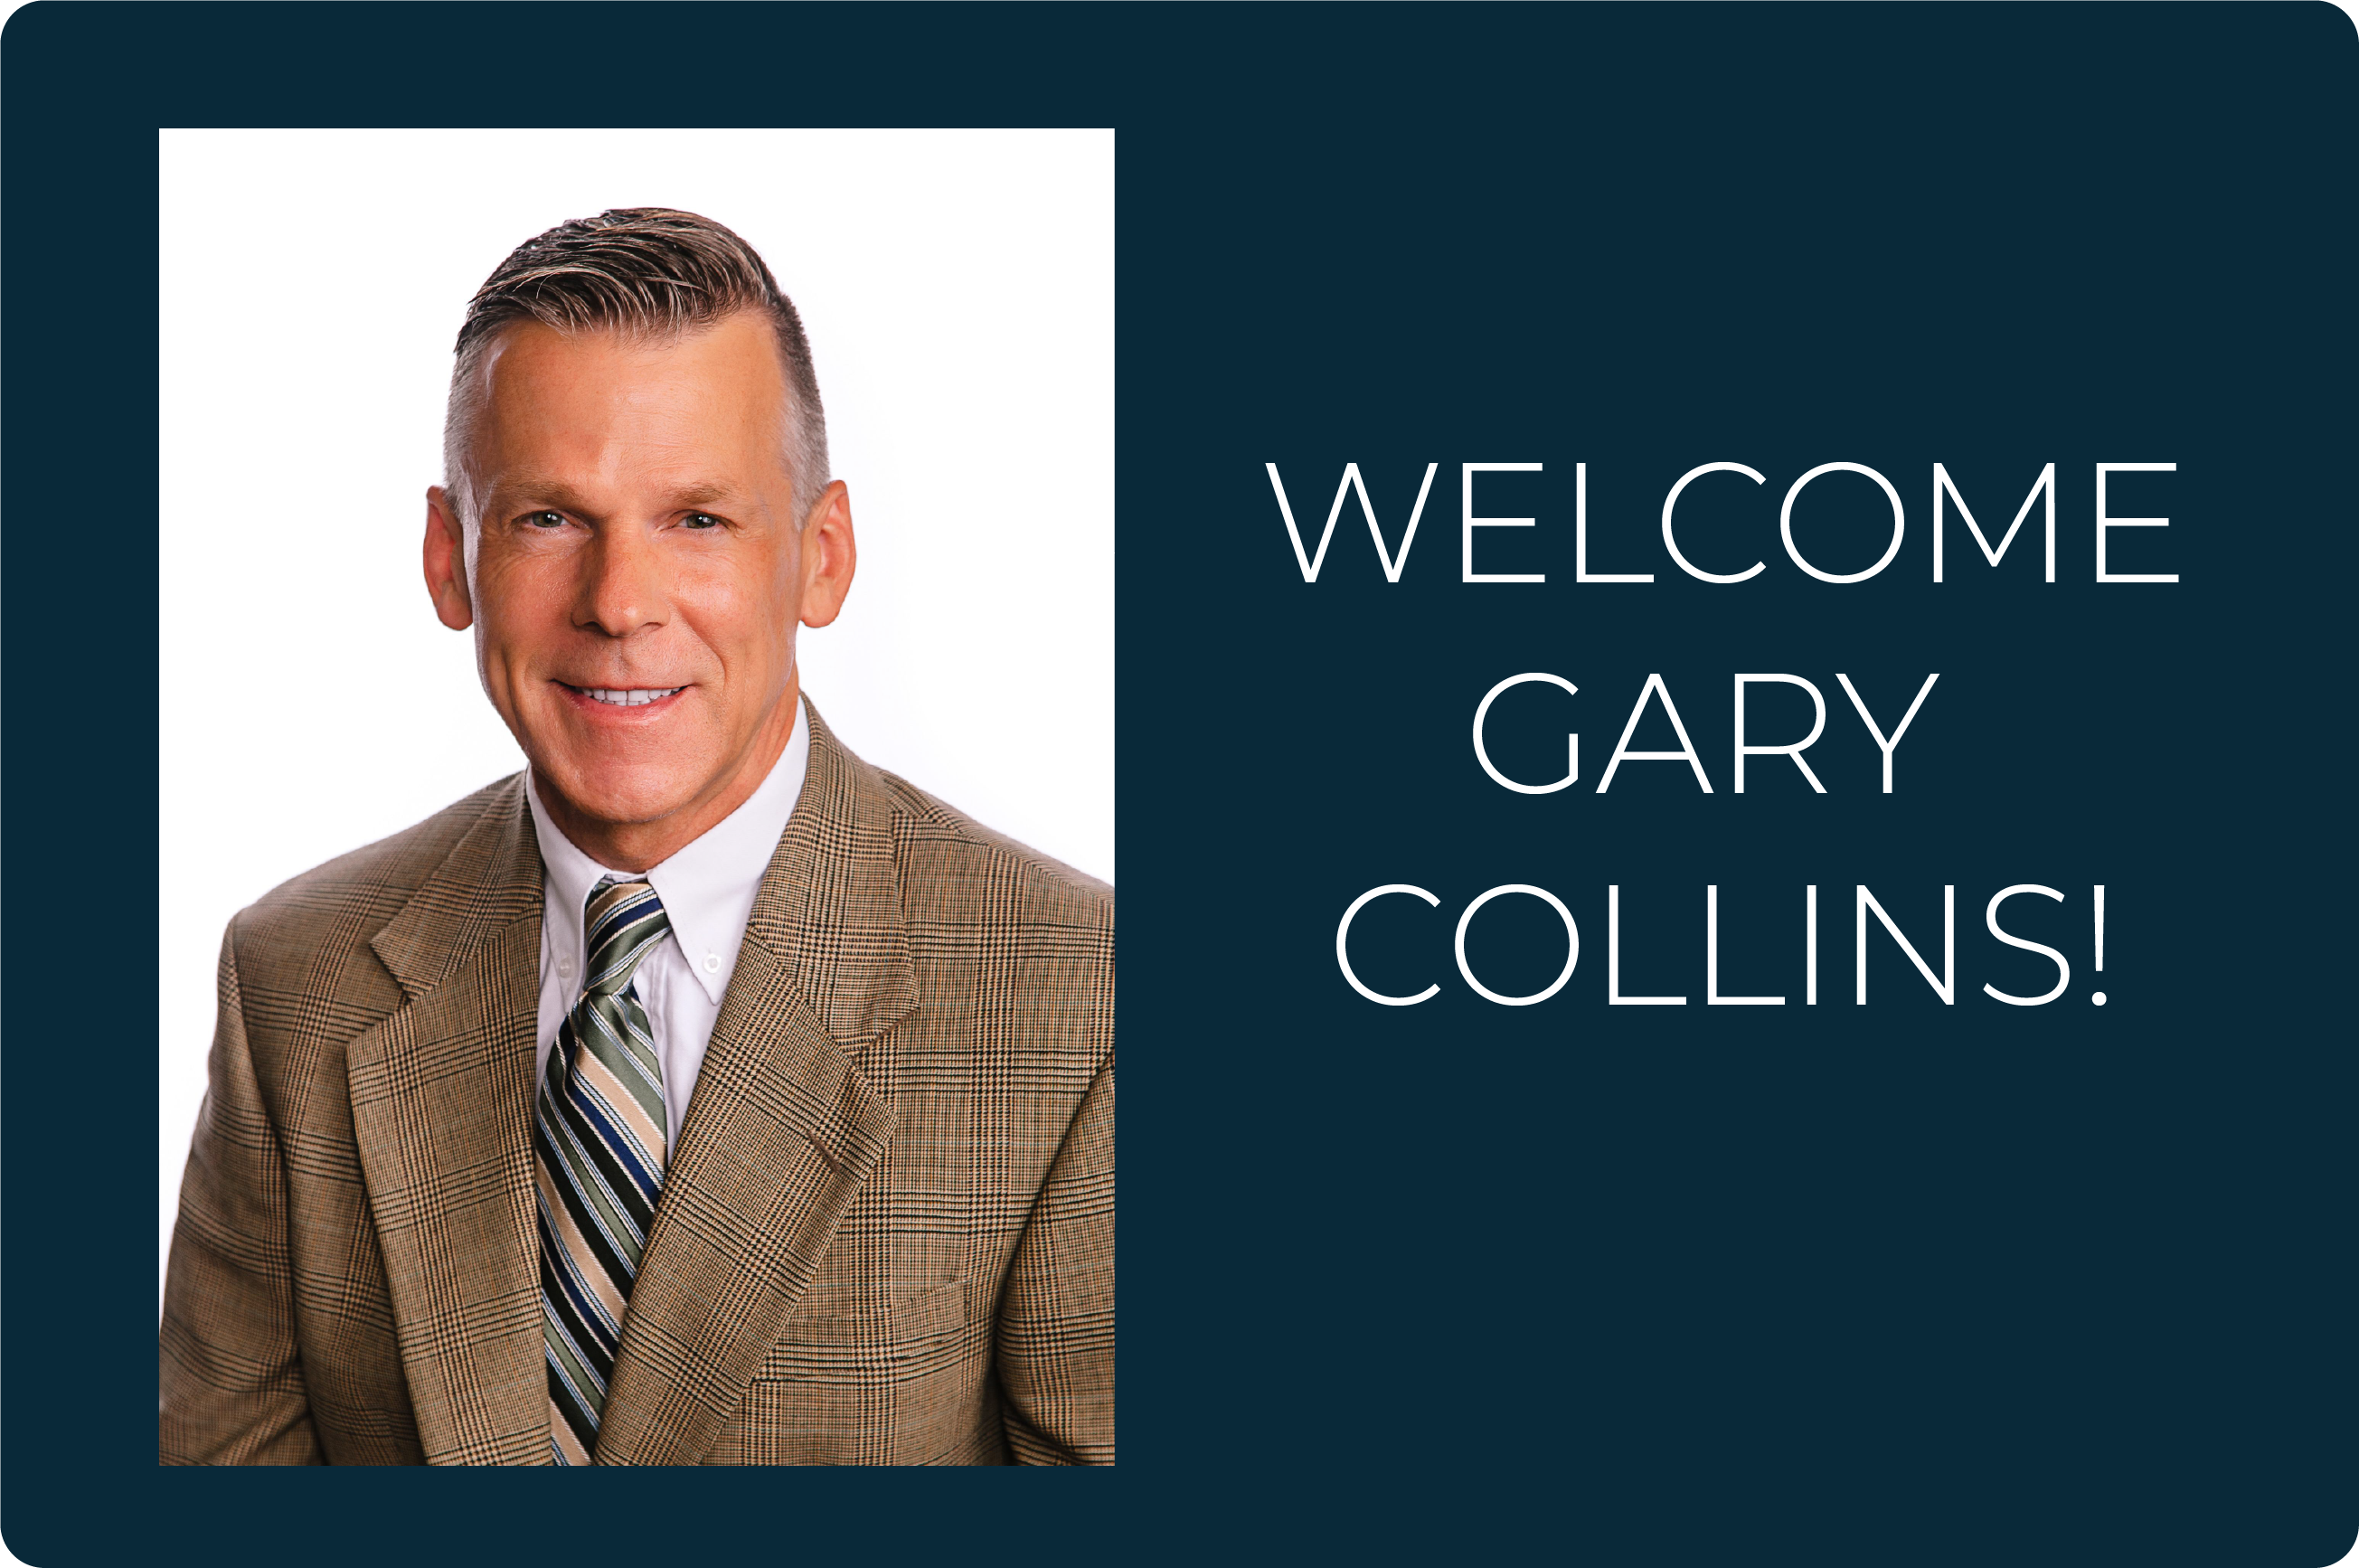 Please join us in welcoming our new CEO!